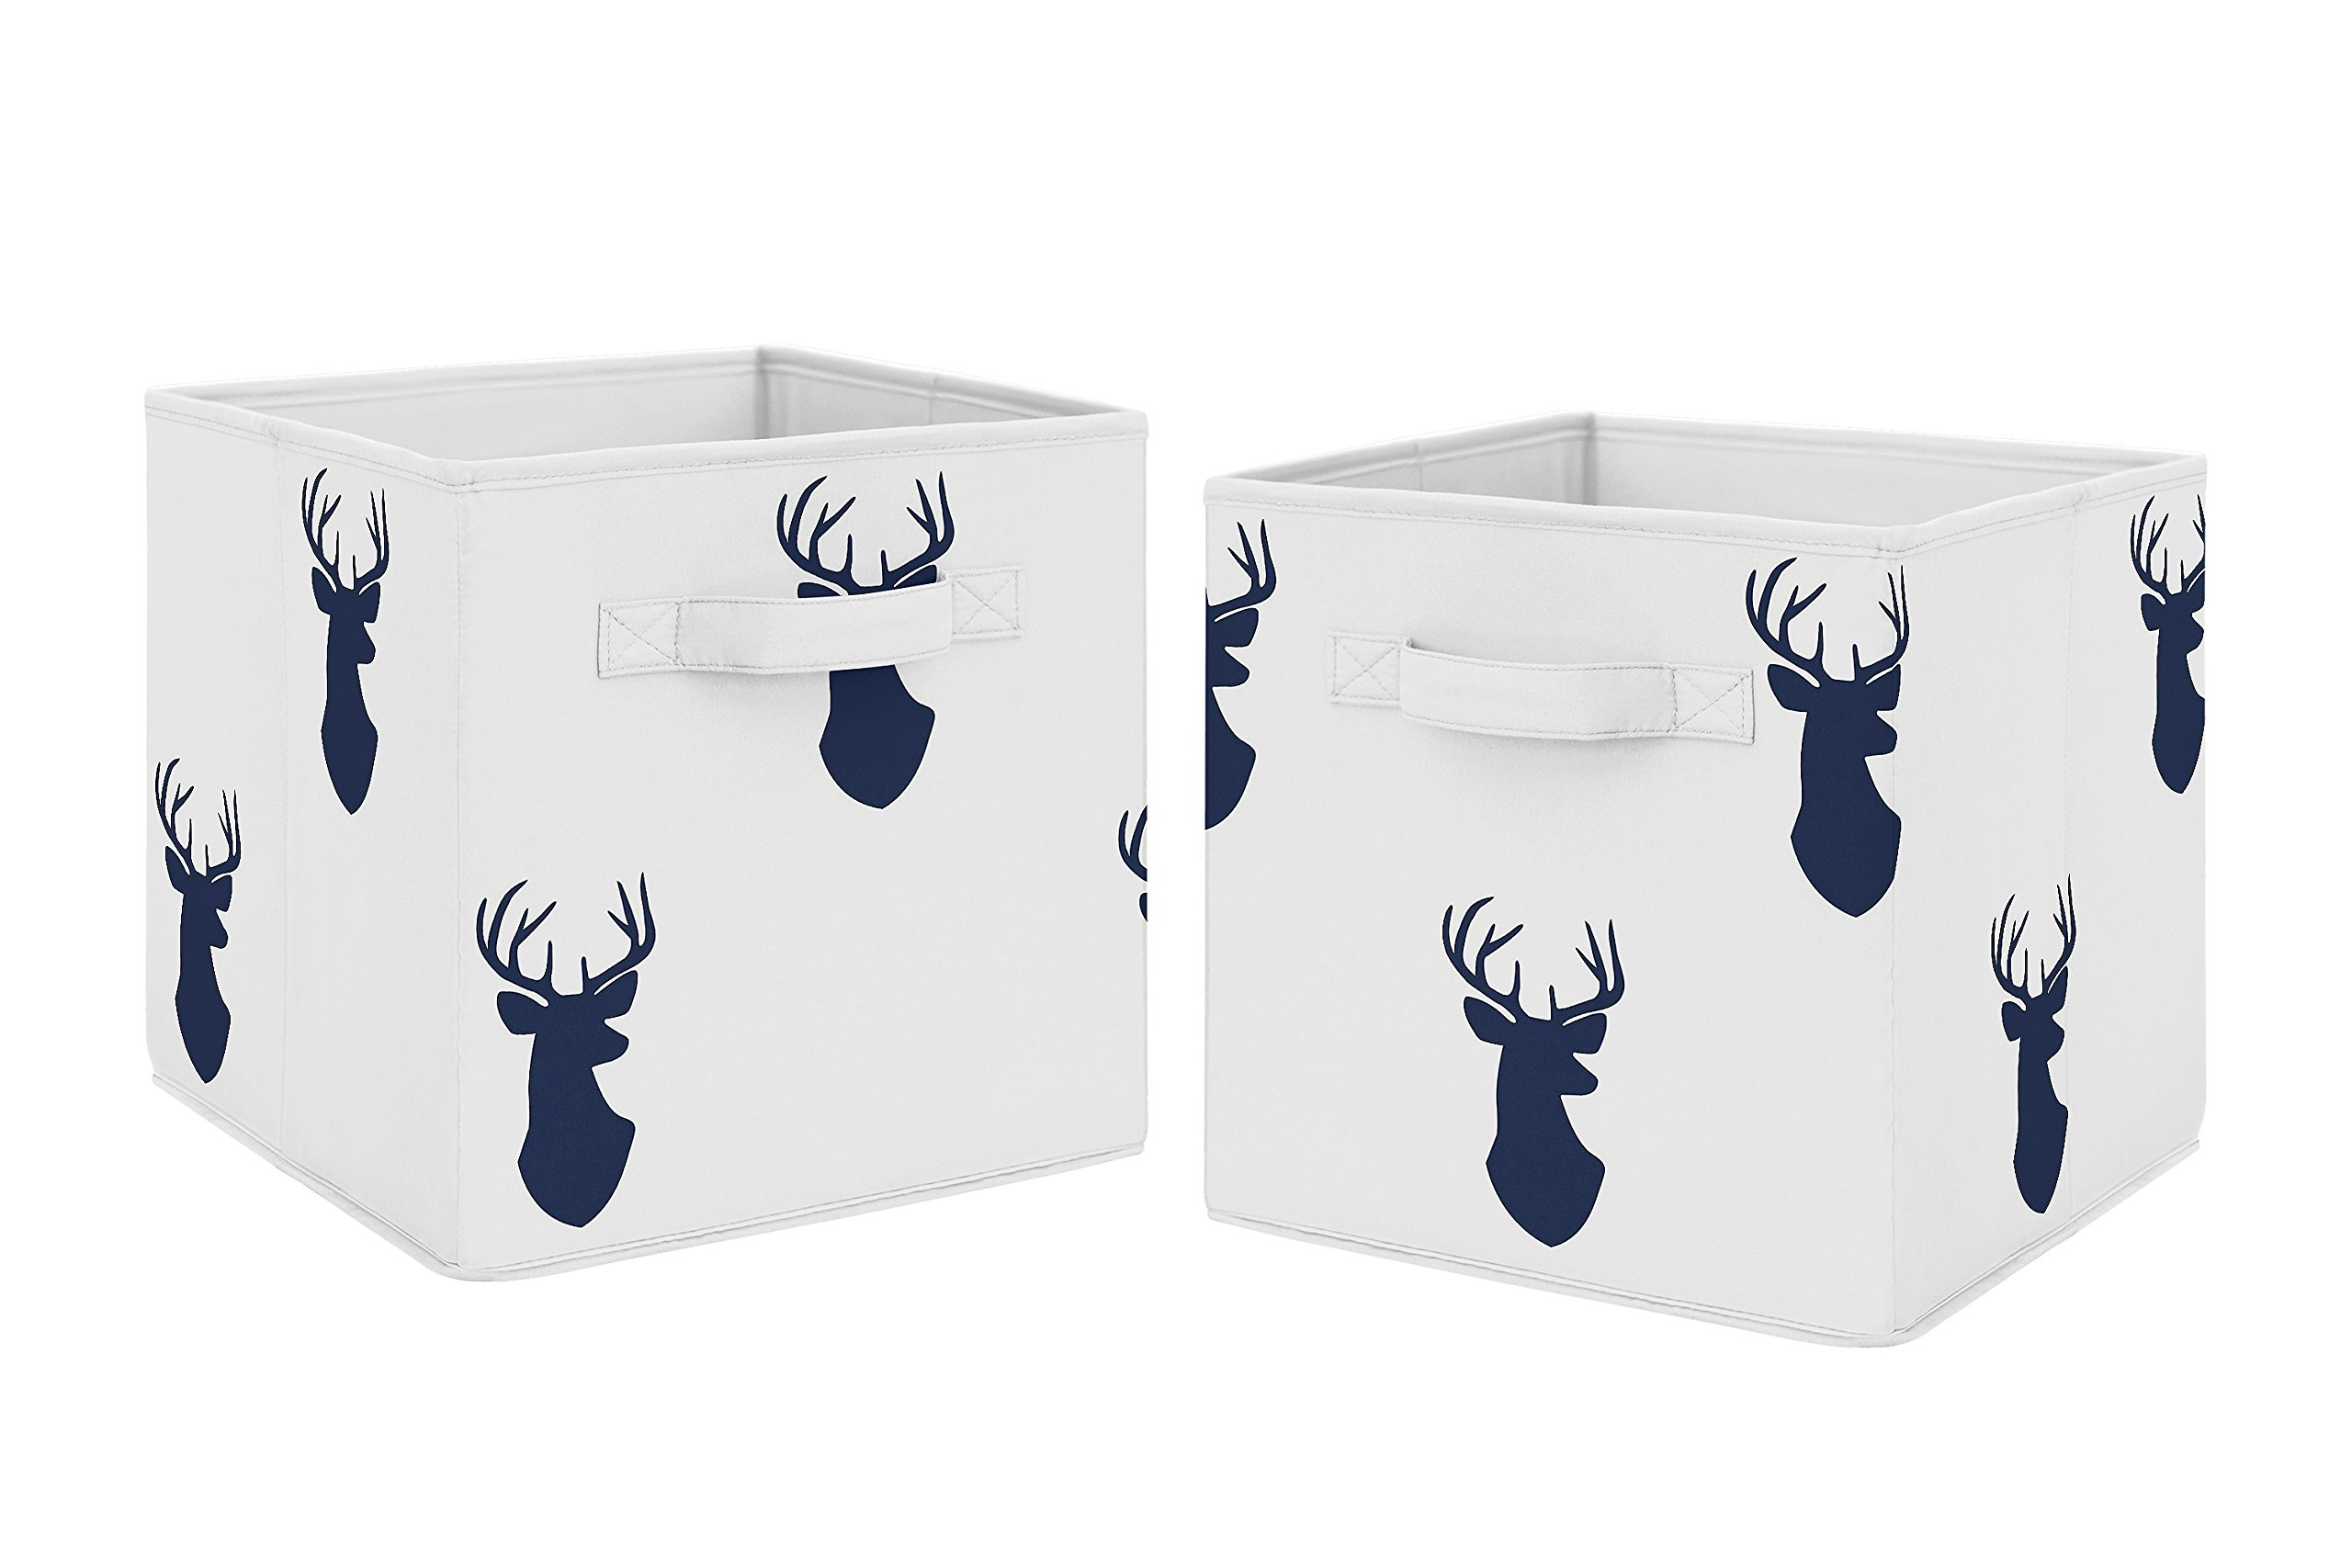 Navy Blue Deer Foldable Fabric Storage Cube Bins Boxes Organizer Toys Kids Baby Childrens for Woodland Deer Stag Collection by Sweet Jojo Designs - Set of 2